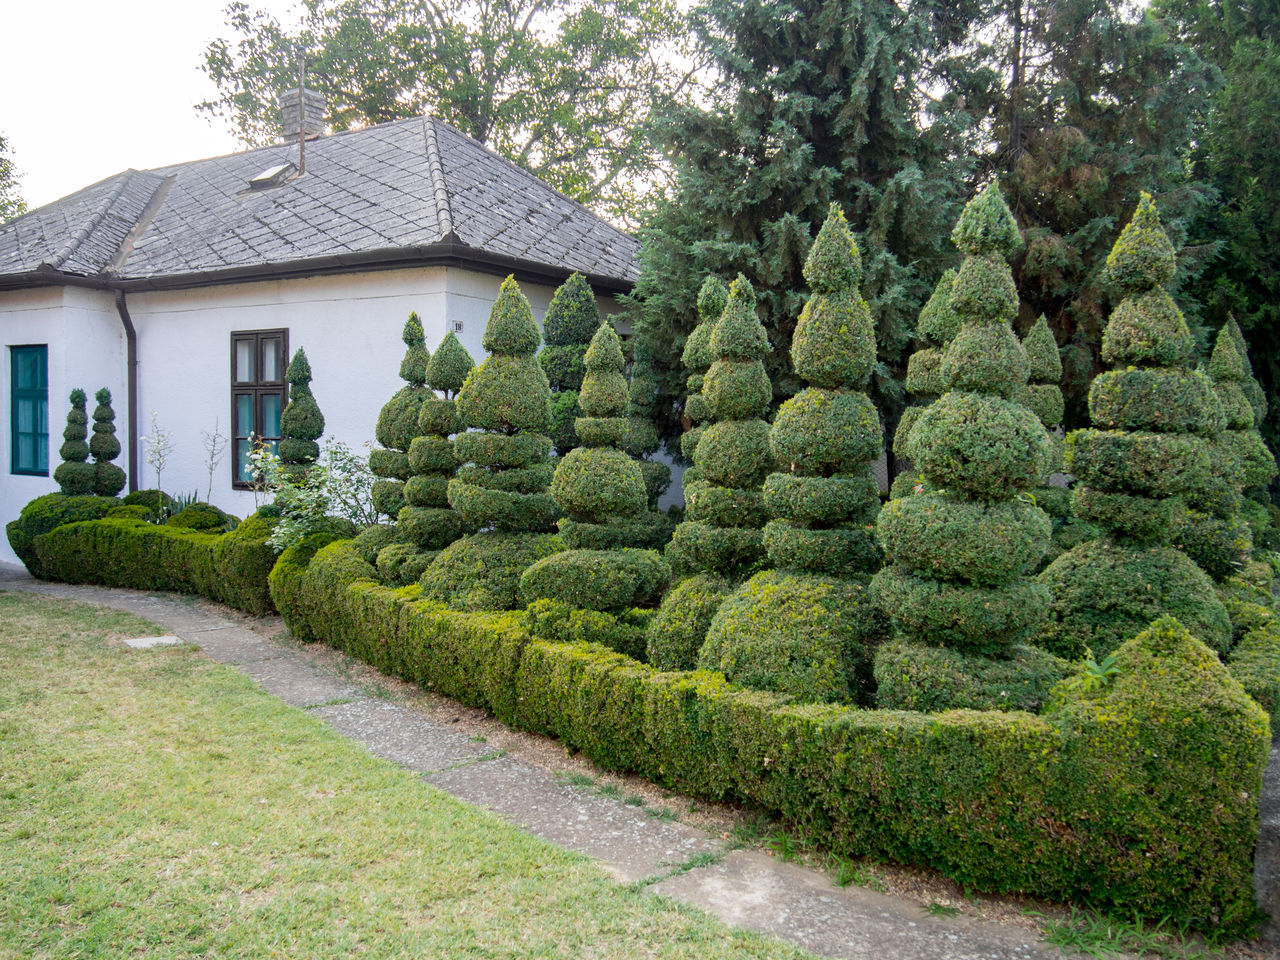 Boxwood Building Exterior Bushes Bushes And Trees Bushes With Fresh Green Leaves Buxus Cottage Cottage Life Day Evergreen Garden Garden Art Garden Life Grass Green Color Nature No People Old House Outdoors Quirky Shapes Shrub Tree Trimmed Unusual